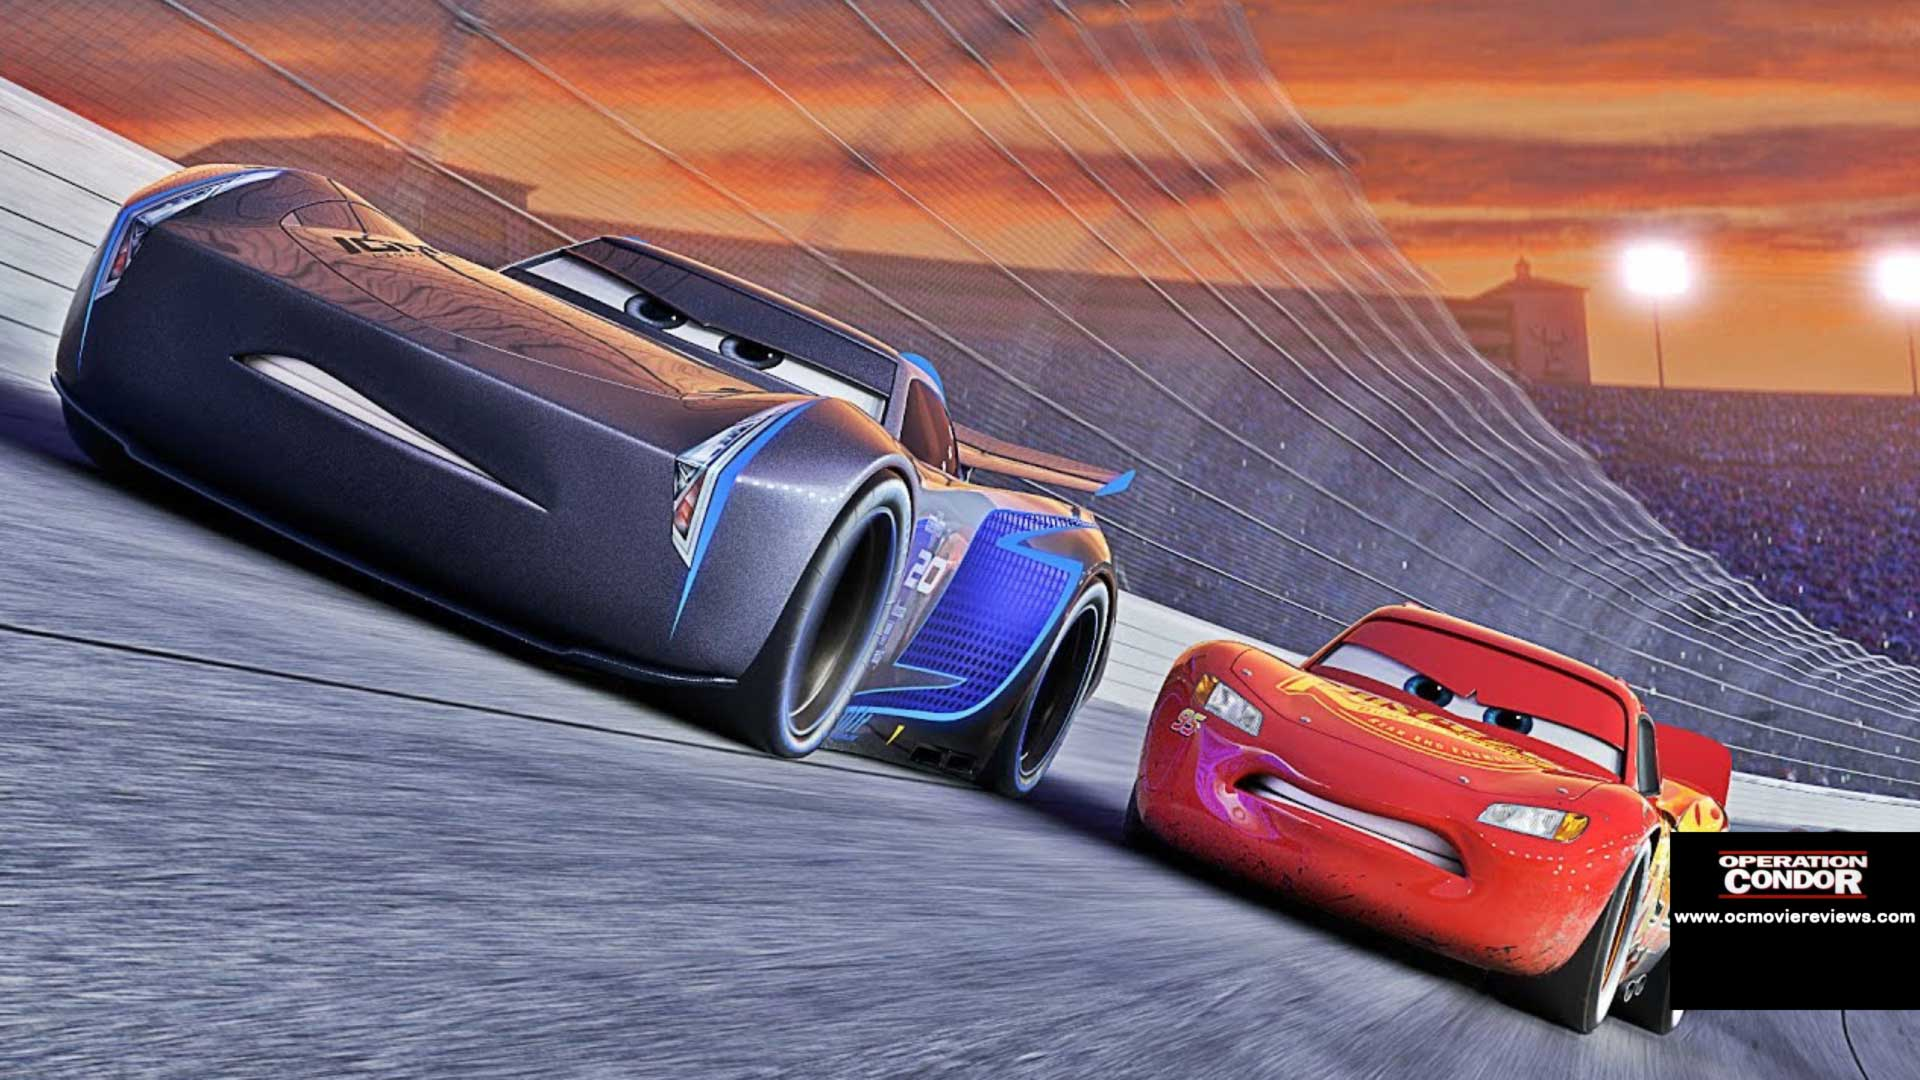 Cars 3 Review – It's Replacement Time - OC Movie Reviews - Movie Reviews, Movie News, Documentary Reviews, Short Films, Short Film Reviews, Trailers, Movie Trailers, Interviews, film reviews, film news, hollywood, indie films, documentaries